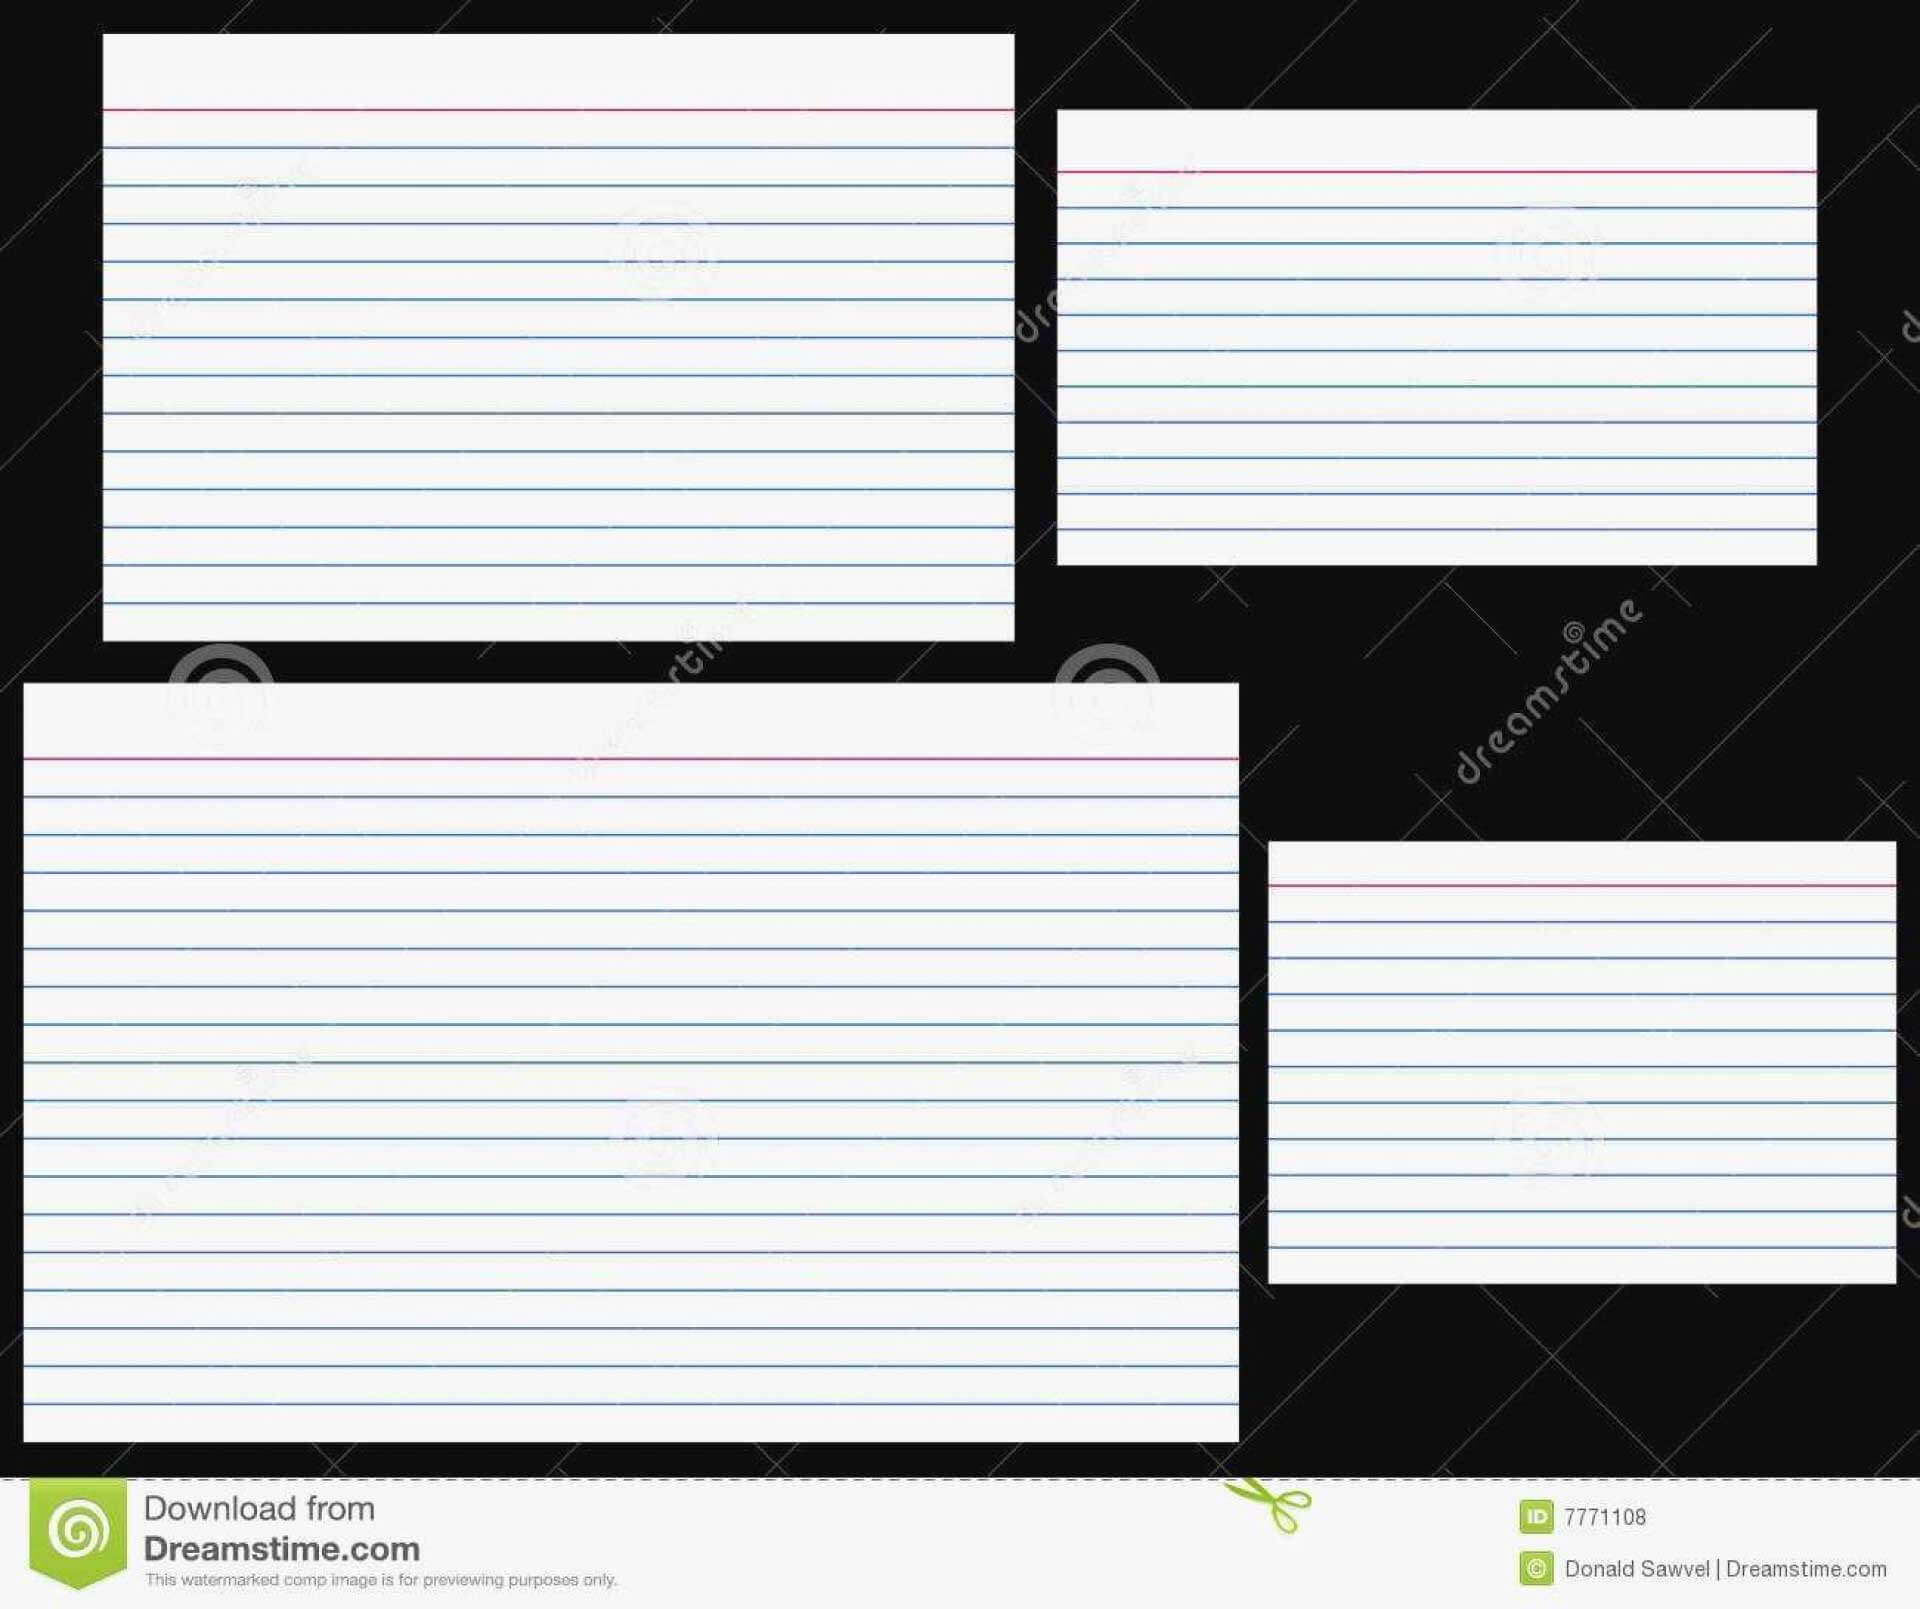 Daily Cash Receipt Log Template 650*545 – 84 Placement 5 X 8 With Regard To 5 By 8 Index Card Template